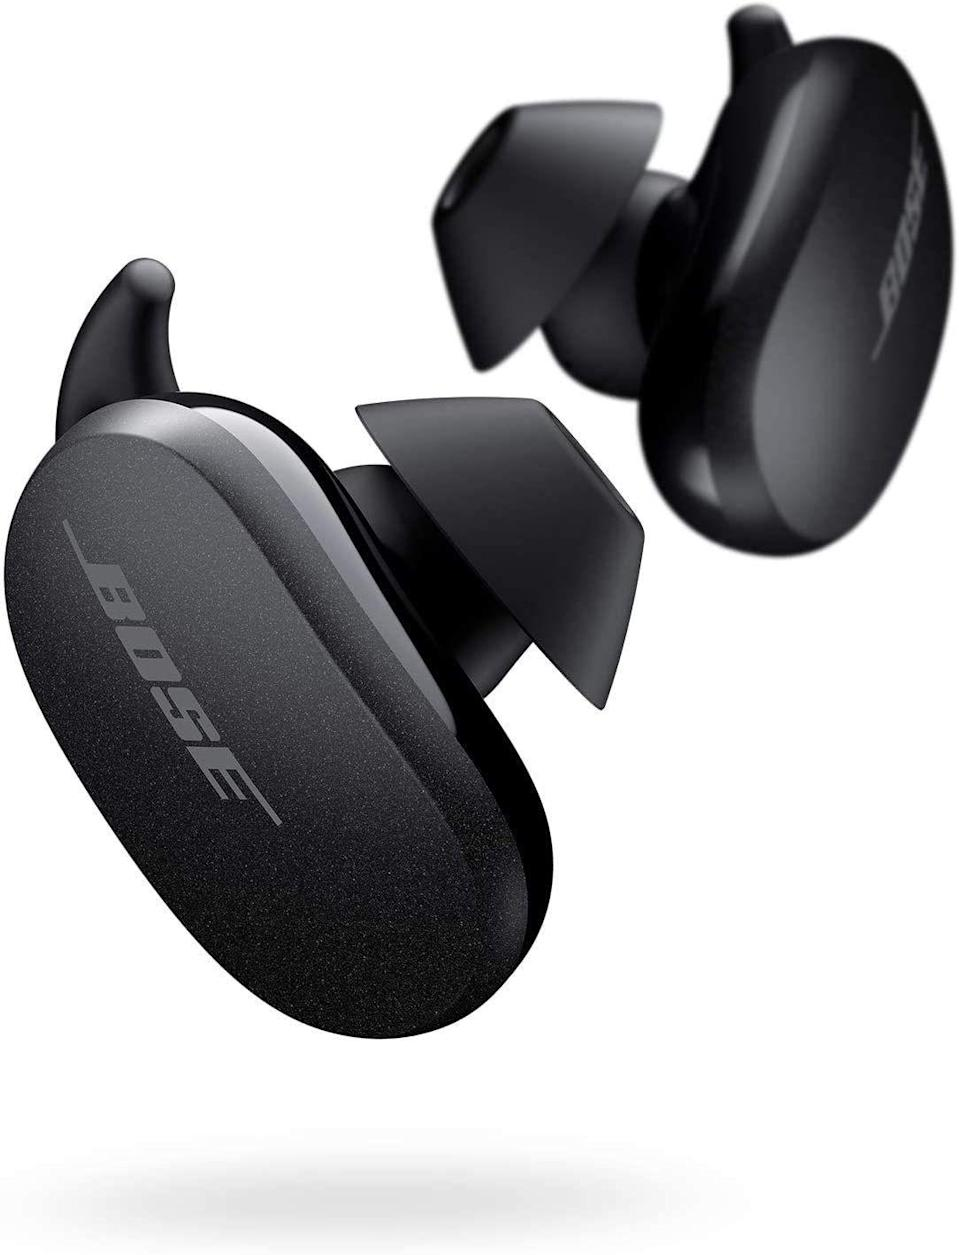 """<p><a class=""""link rapid-noclick-resp"""" href=""""https://www.amazon.co.uk/Bose-QuietComfort-Cancelling-Earbuds-True-Earphones-Triple-Triple-Black/dp/B08C4KWM9T?tag=hearstuk-yahoo-21&ascsubtag=%5Bartid%7C1923.g.25432602%5Bsrc%7Cyahoo-uk"""" rel=""""nofollow noopener"""" target=""""_blank"""" data-ylk=""""slk:SHOP"""">SHOP</a></p><p>For our money, some of the best true wireless earphones on the market – and while they're not exactly cheap, they're well worth the investment. The QuietComforts are light but sturdy, sit securely in the ear during exercise (three hooked buds are included), and don't require you to download a glitchy app like so many devices these days.</p><p>£229.99, <a href=""""https://www.amazon.co.uk/Bose-QuietComfort-Cancelling-Earbuds-True-Earphones-Triple-Triple-Black/dp/B08C4KWM9T"""" rel=""""nofollow noopener"""" target=""""_blank"""" data-ylk=""""slk:amazon.co.uk"""" class=""""link rapid-noclick-resp"""">amazon.co.uk</a></p>"""